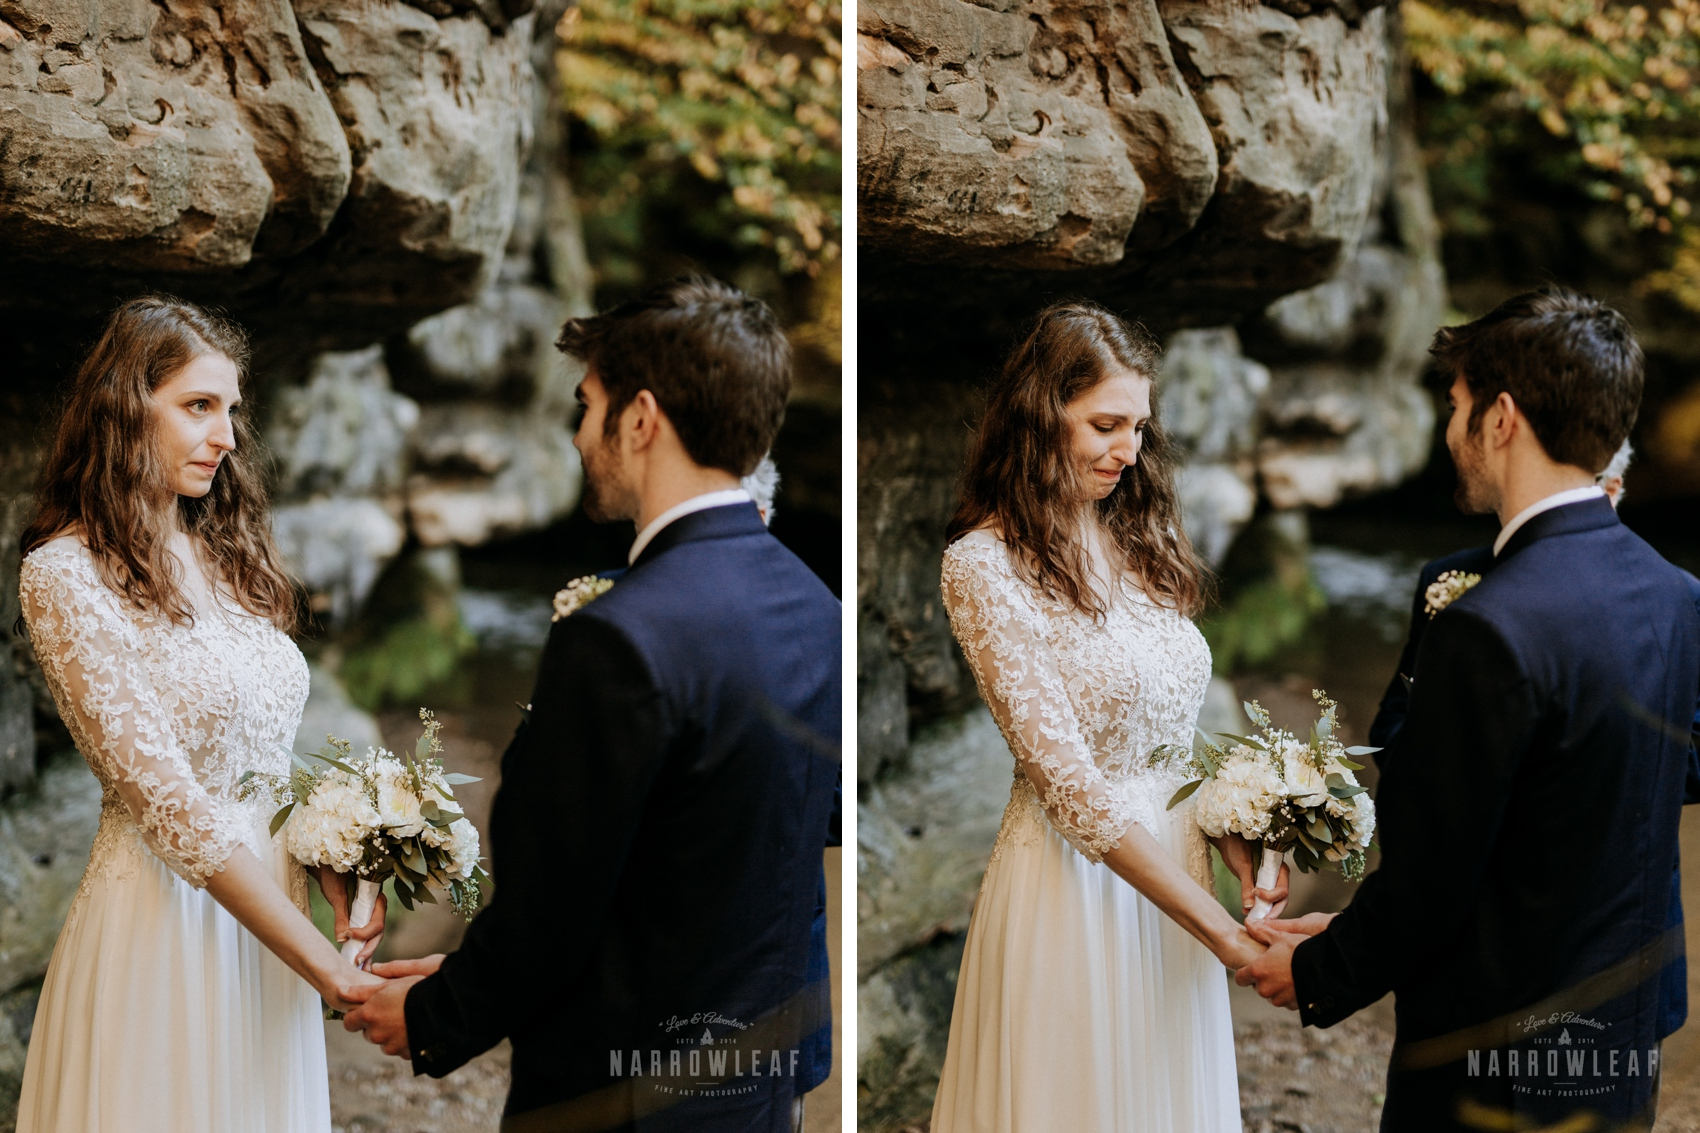 Perrot-State-Park-Baraboo-WIFall-adventure-Elopement-Narrowleaf_Love_and_Adventure_Photography-005-006.jpg